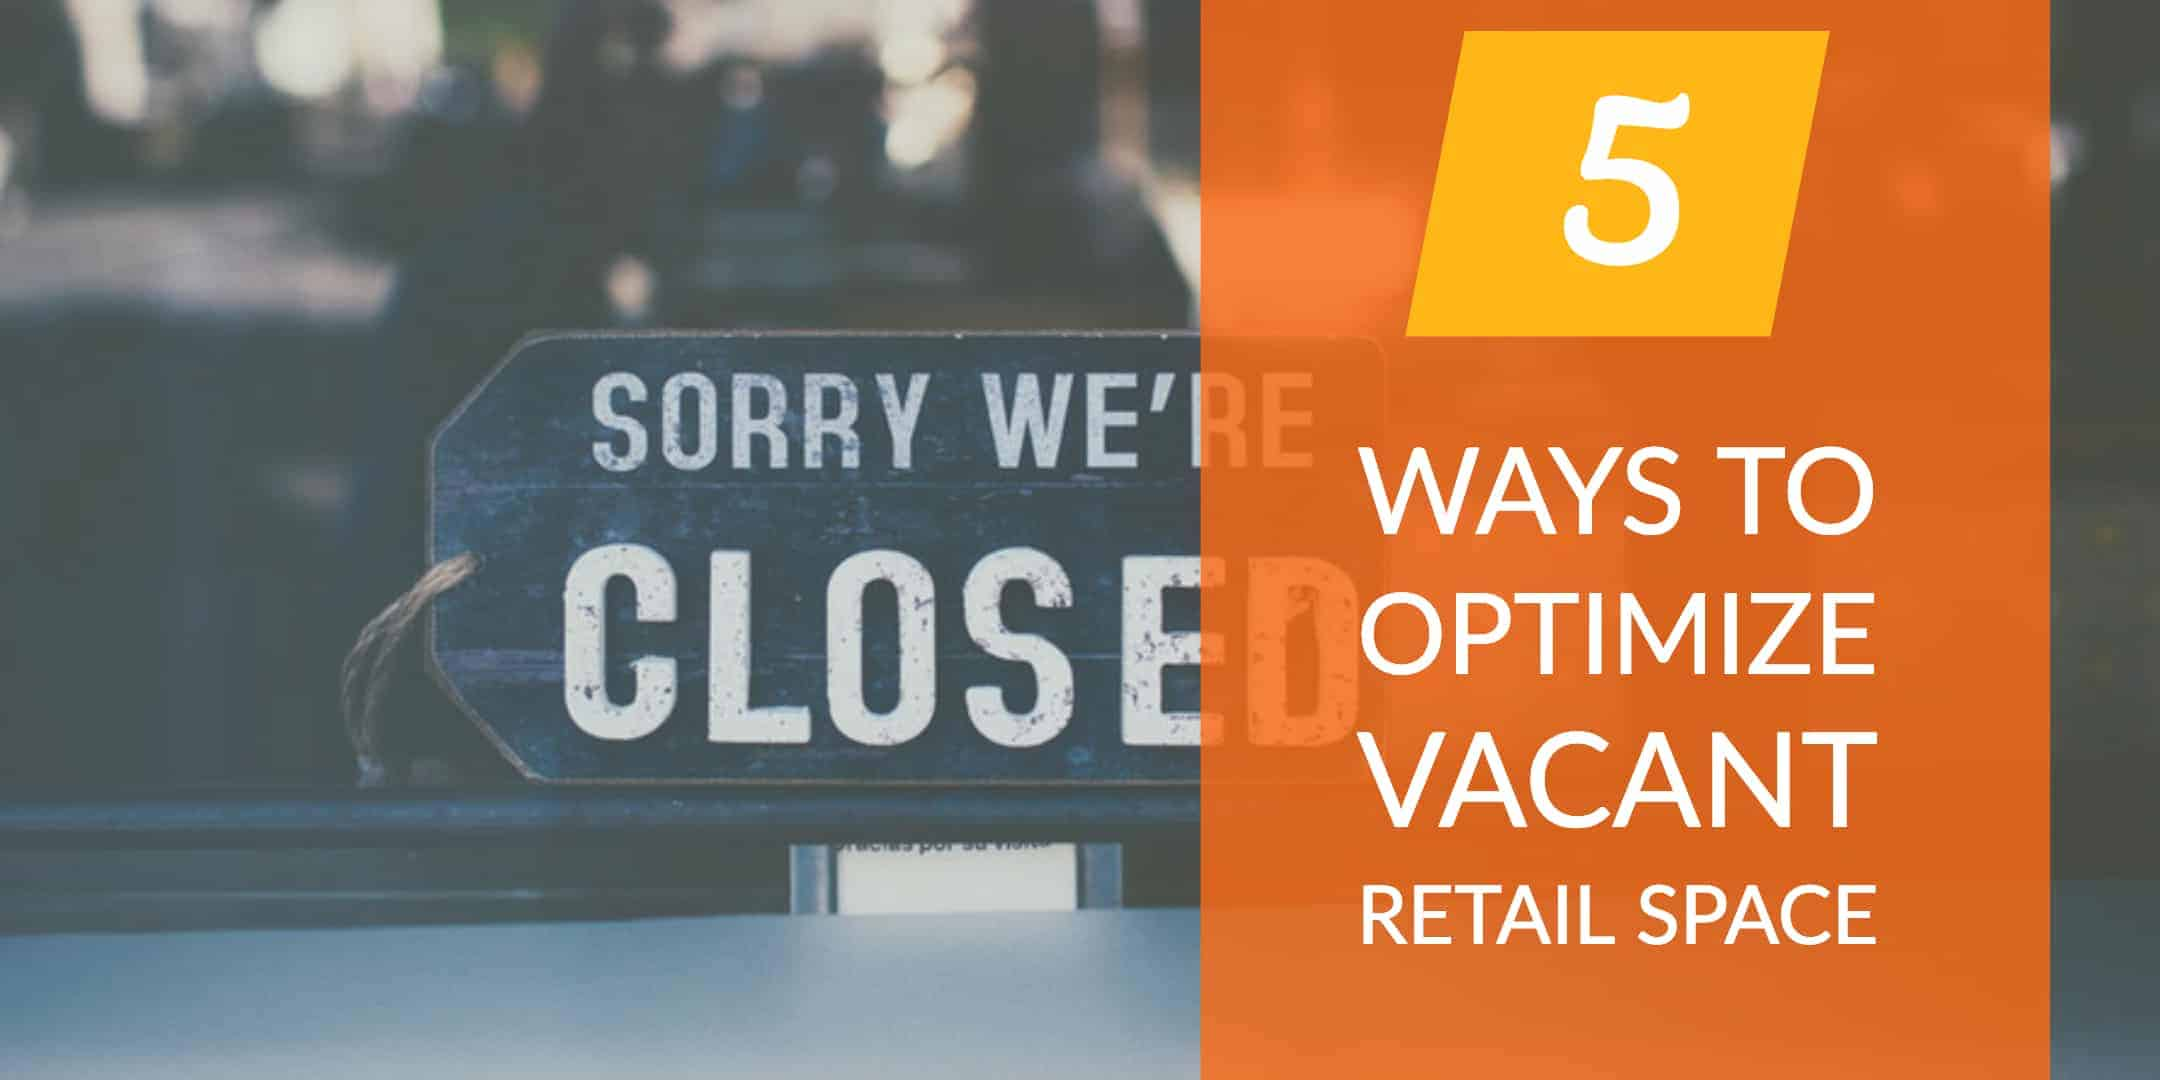 5 Ways to Optimize Vacant Retail Space StrasGlobal